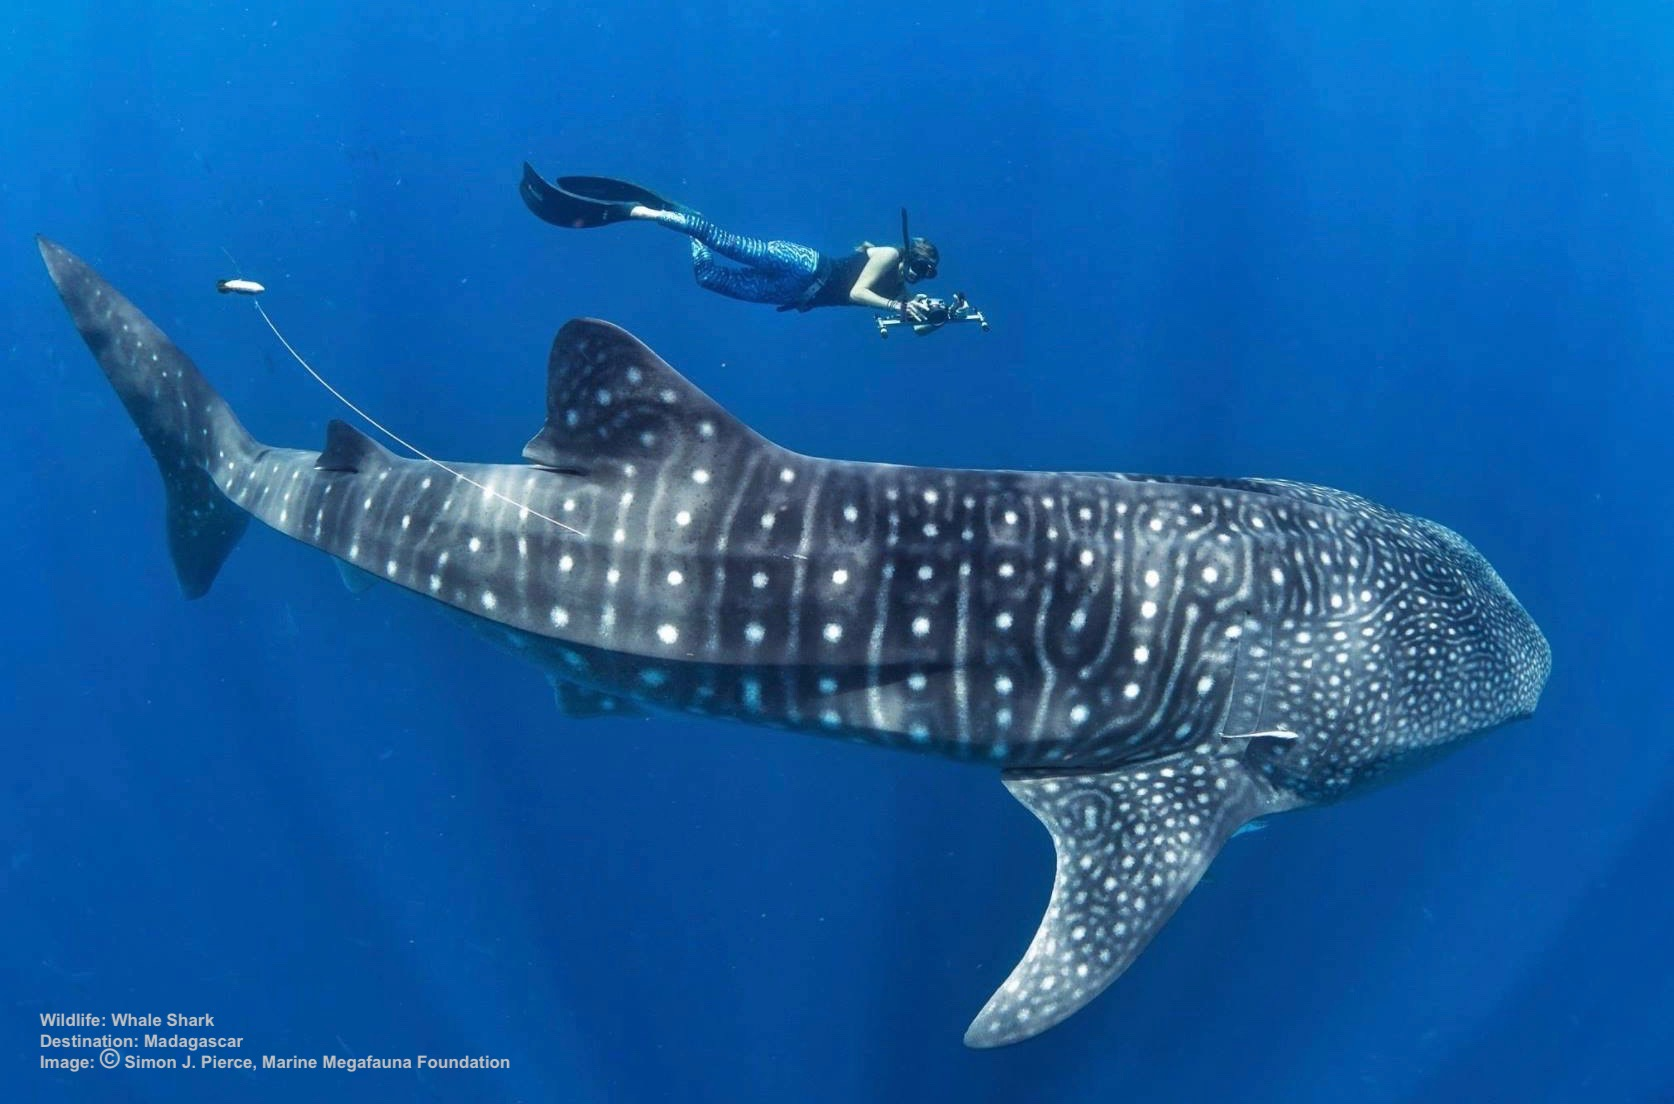 THE  MARINE MEGAFAUNA FOUNDATION  TAGS WHALE SHARKS IN AN EFFORT TO LEARN THEIR HABITS AND PROTECT THEM. IMAGE: MARINE MEGAFAUNA FOUNDATION